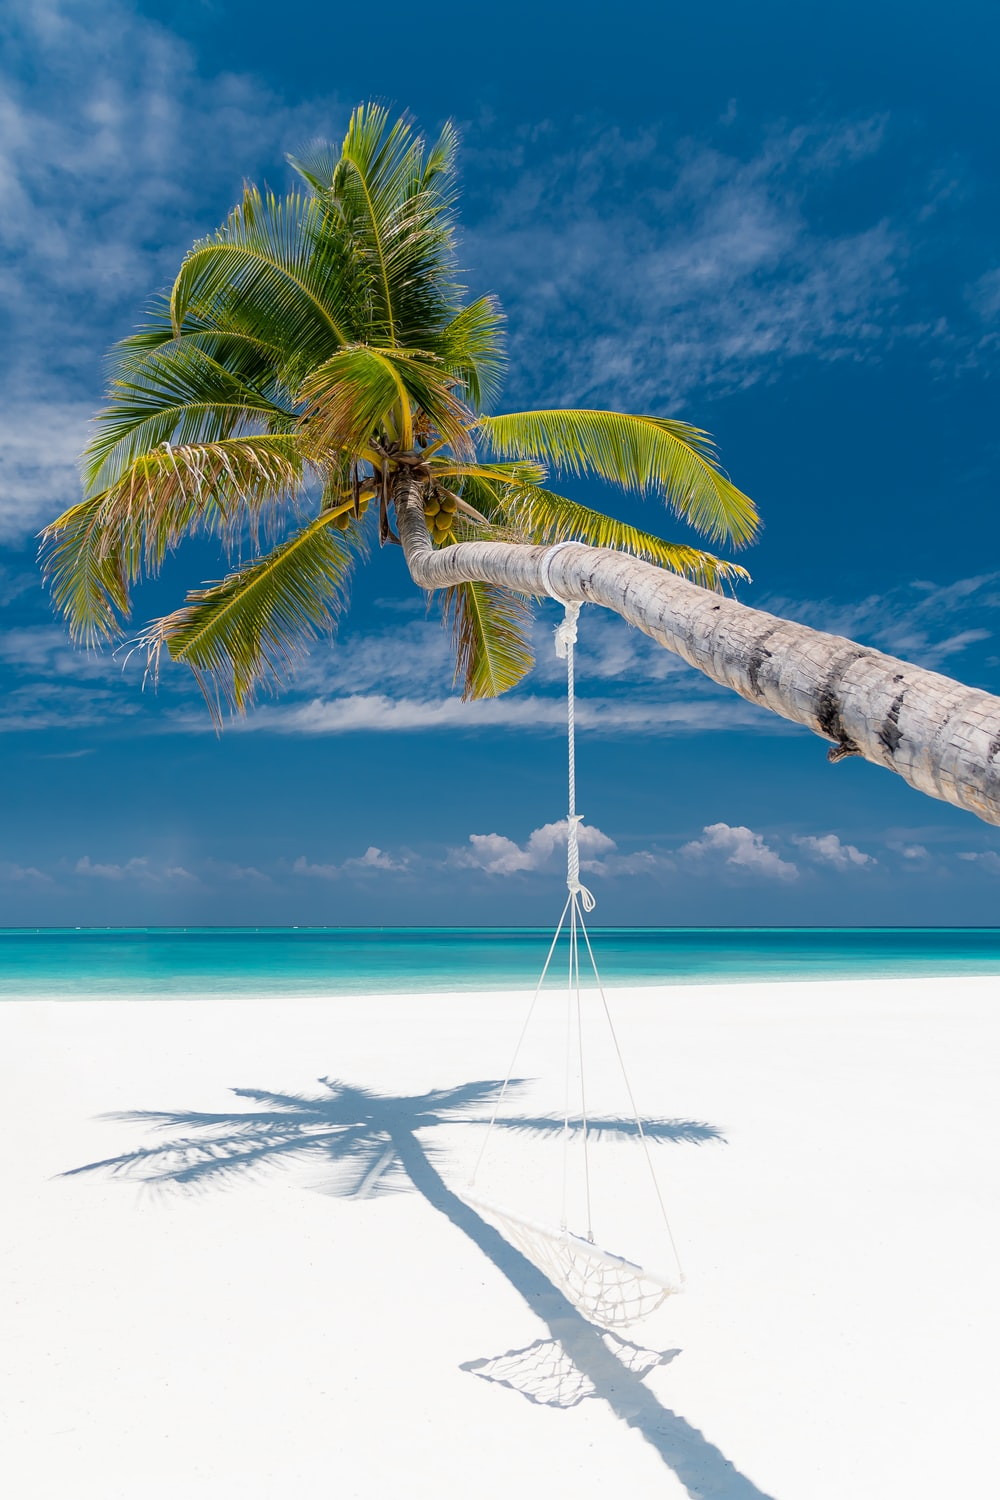 bent coconut tree with hammock near shore during daytime